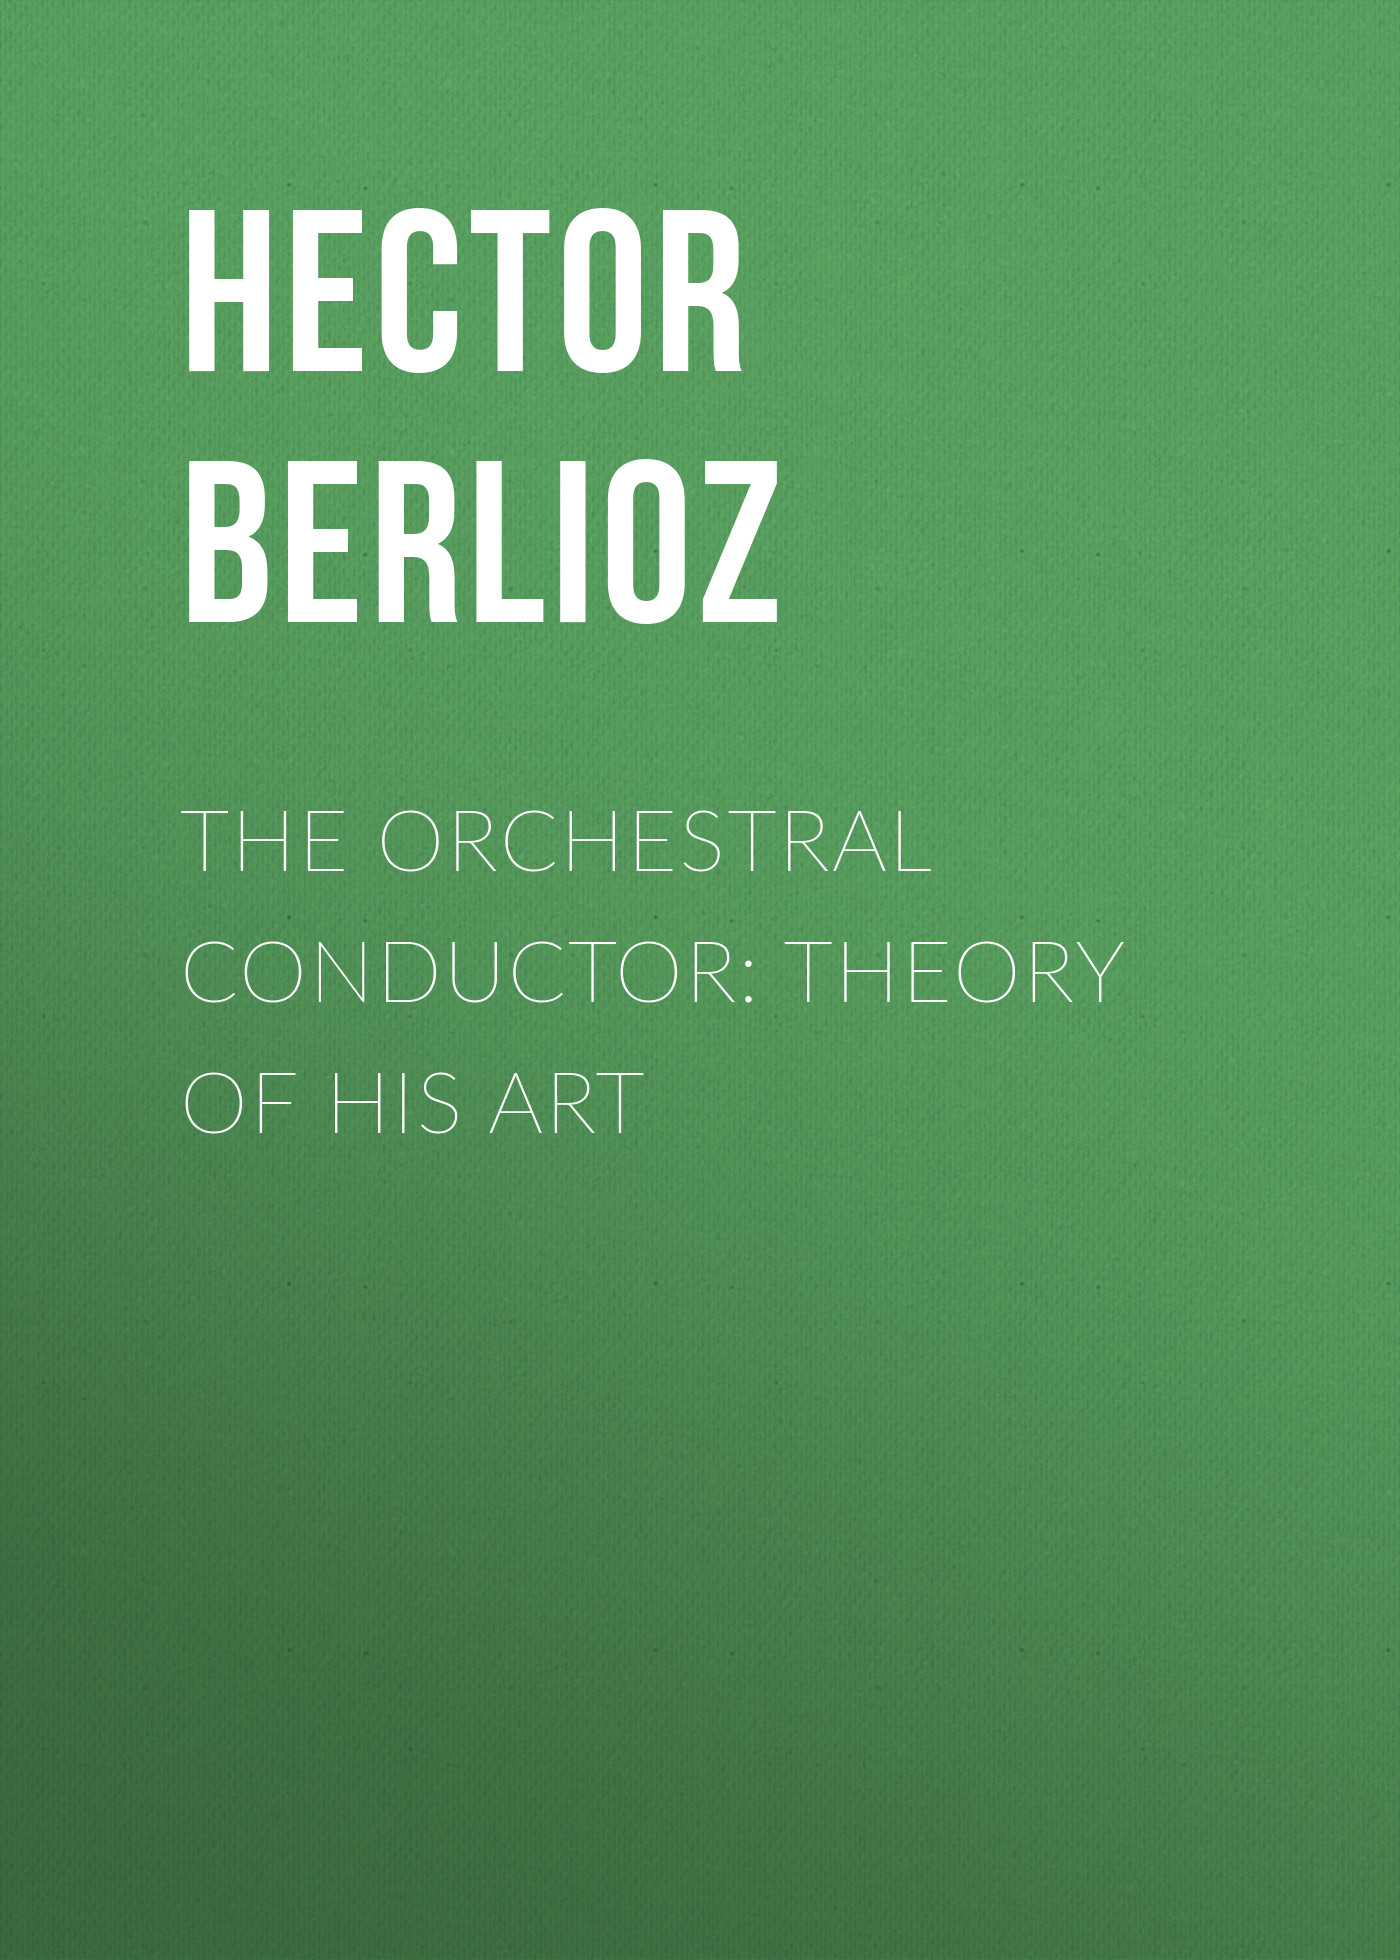 Hector Berlioz The Orchestral Conductor: Theory of His Art hector berlioz lettres intimes